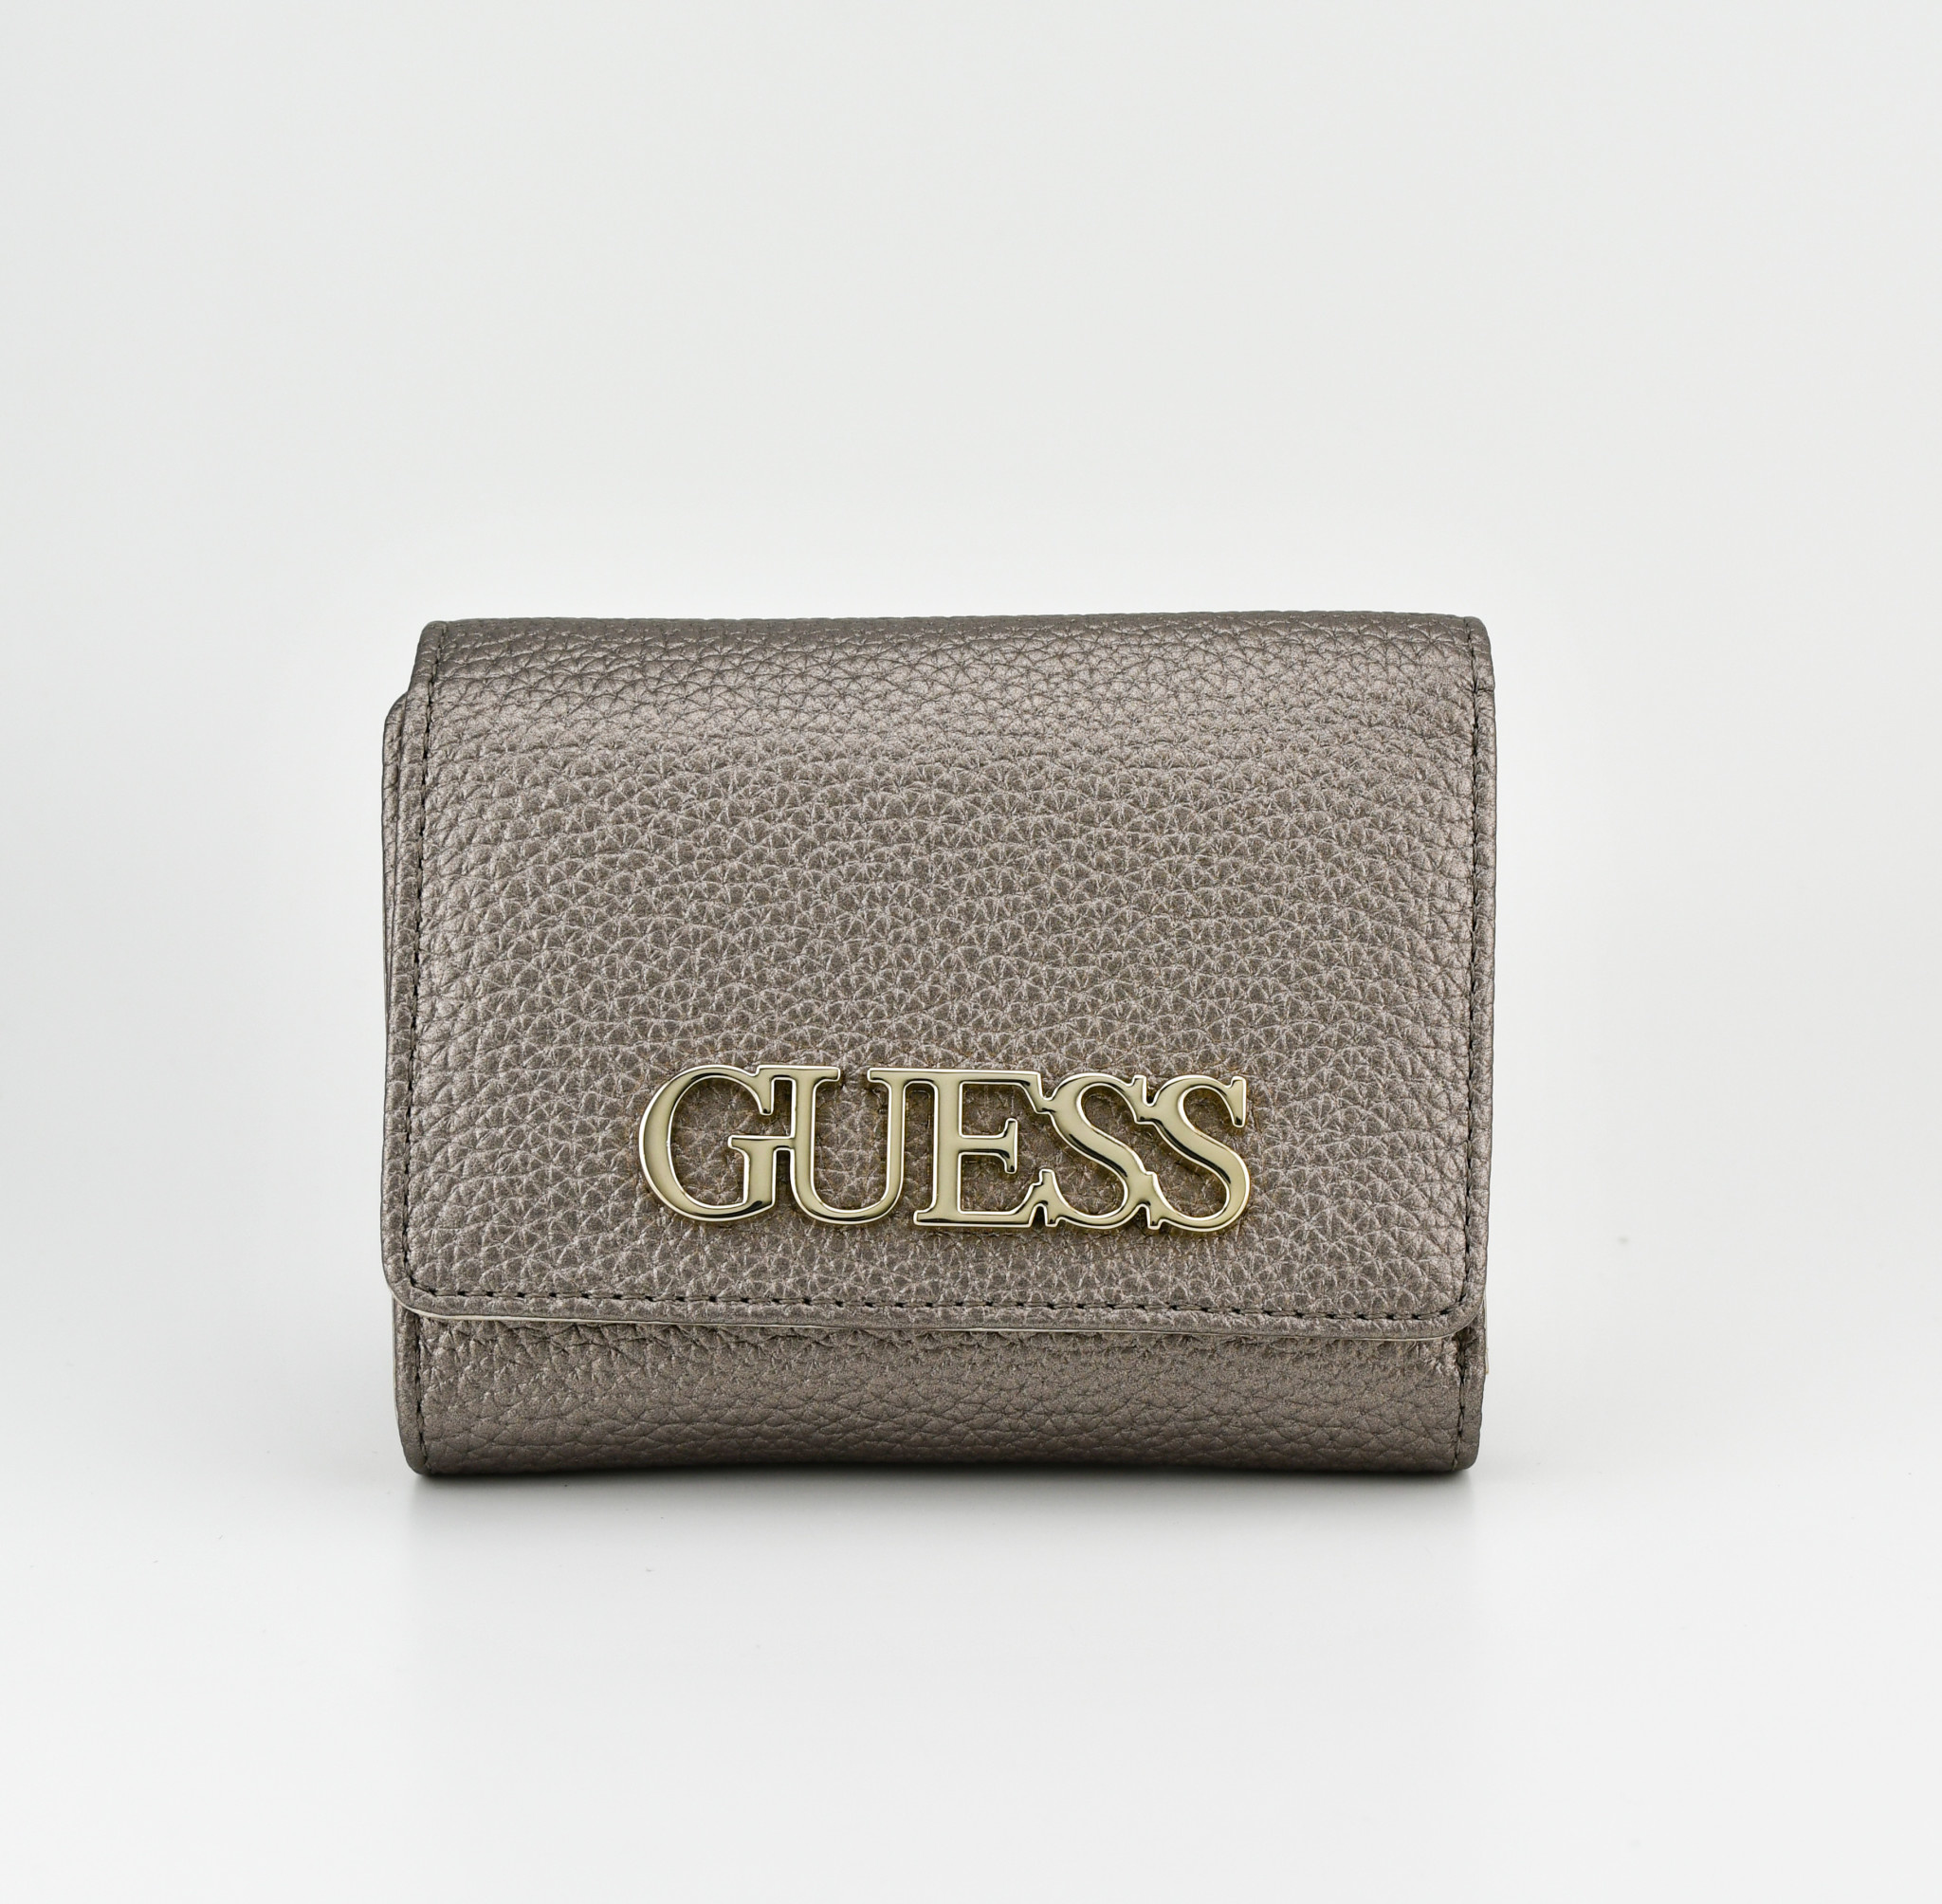 Guess Guess portemonnee Uptown Chic SLG SWMG7301430PEW